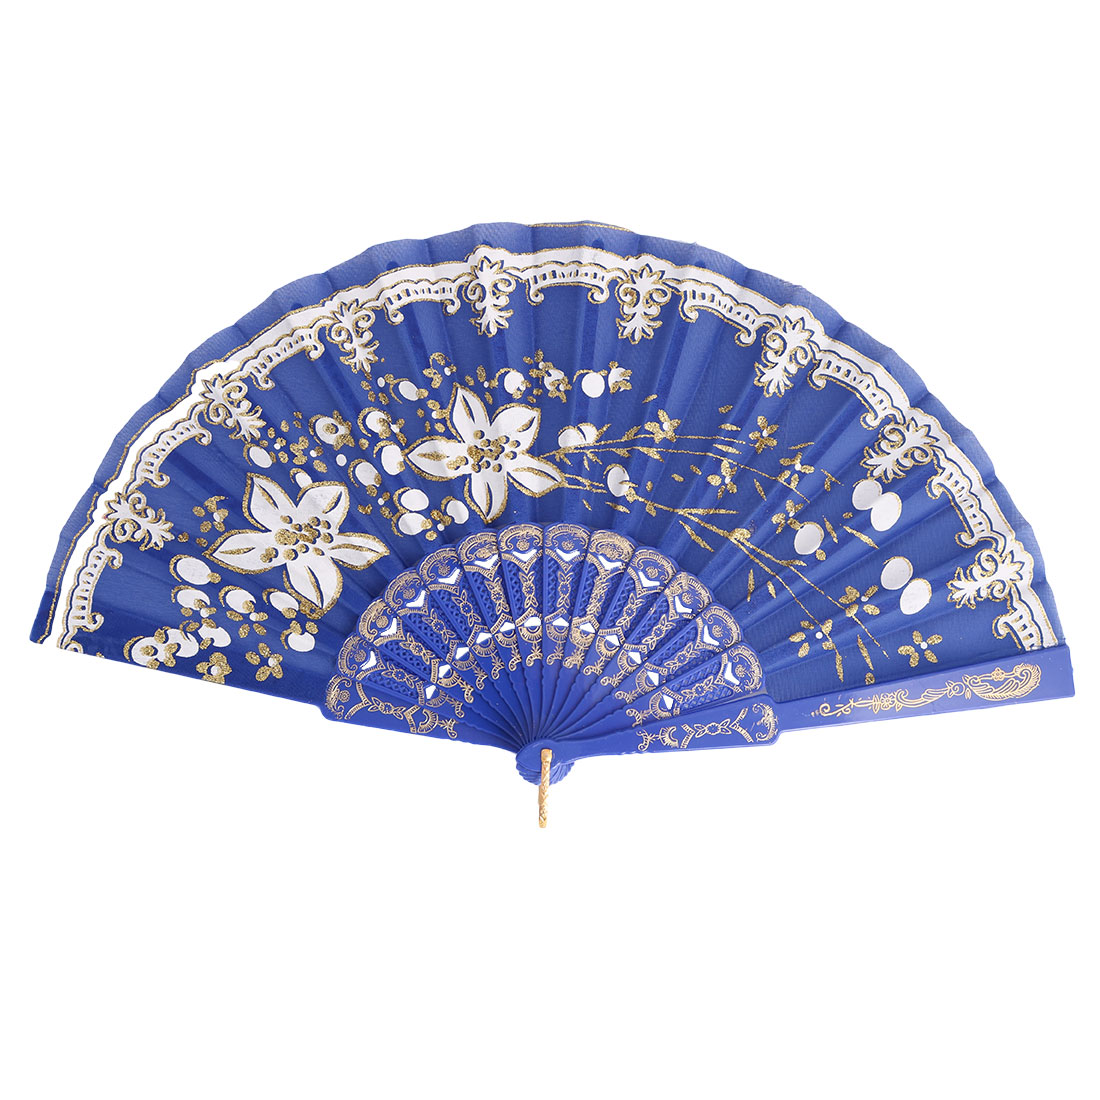 Family Hollow Out Frame Vintage Style Hand-crafted Shining Folding Hand Fan